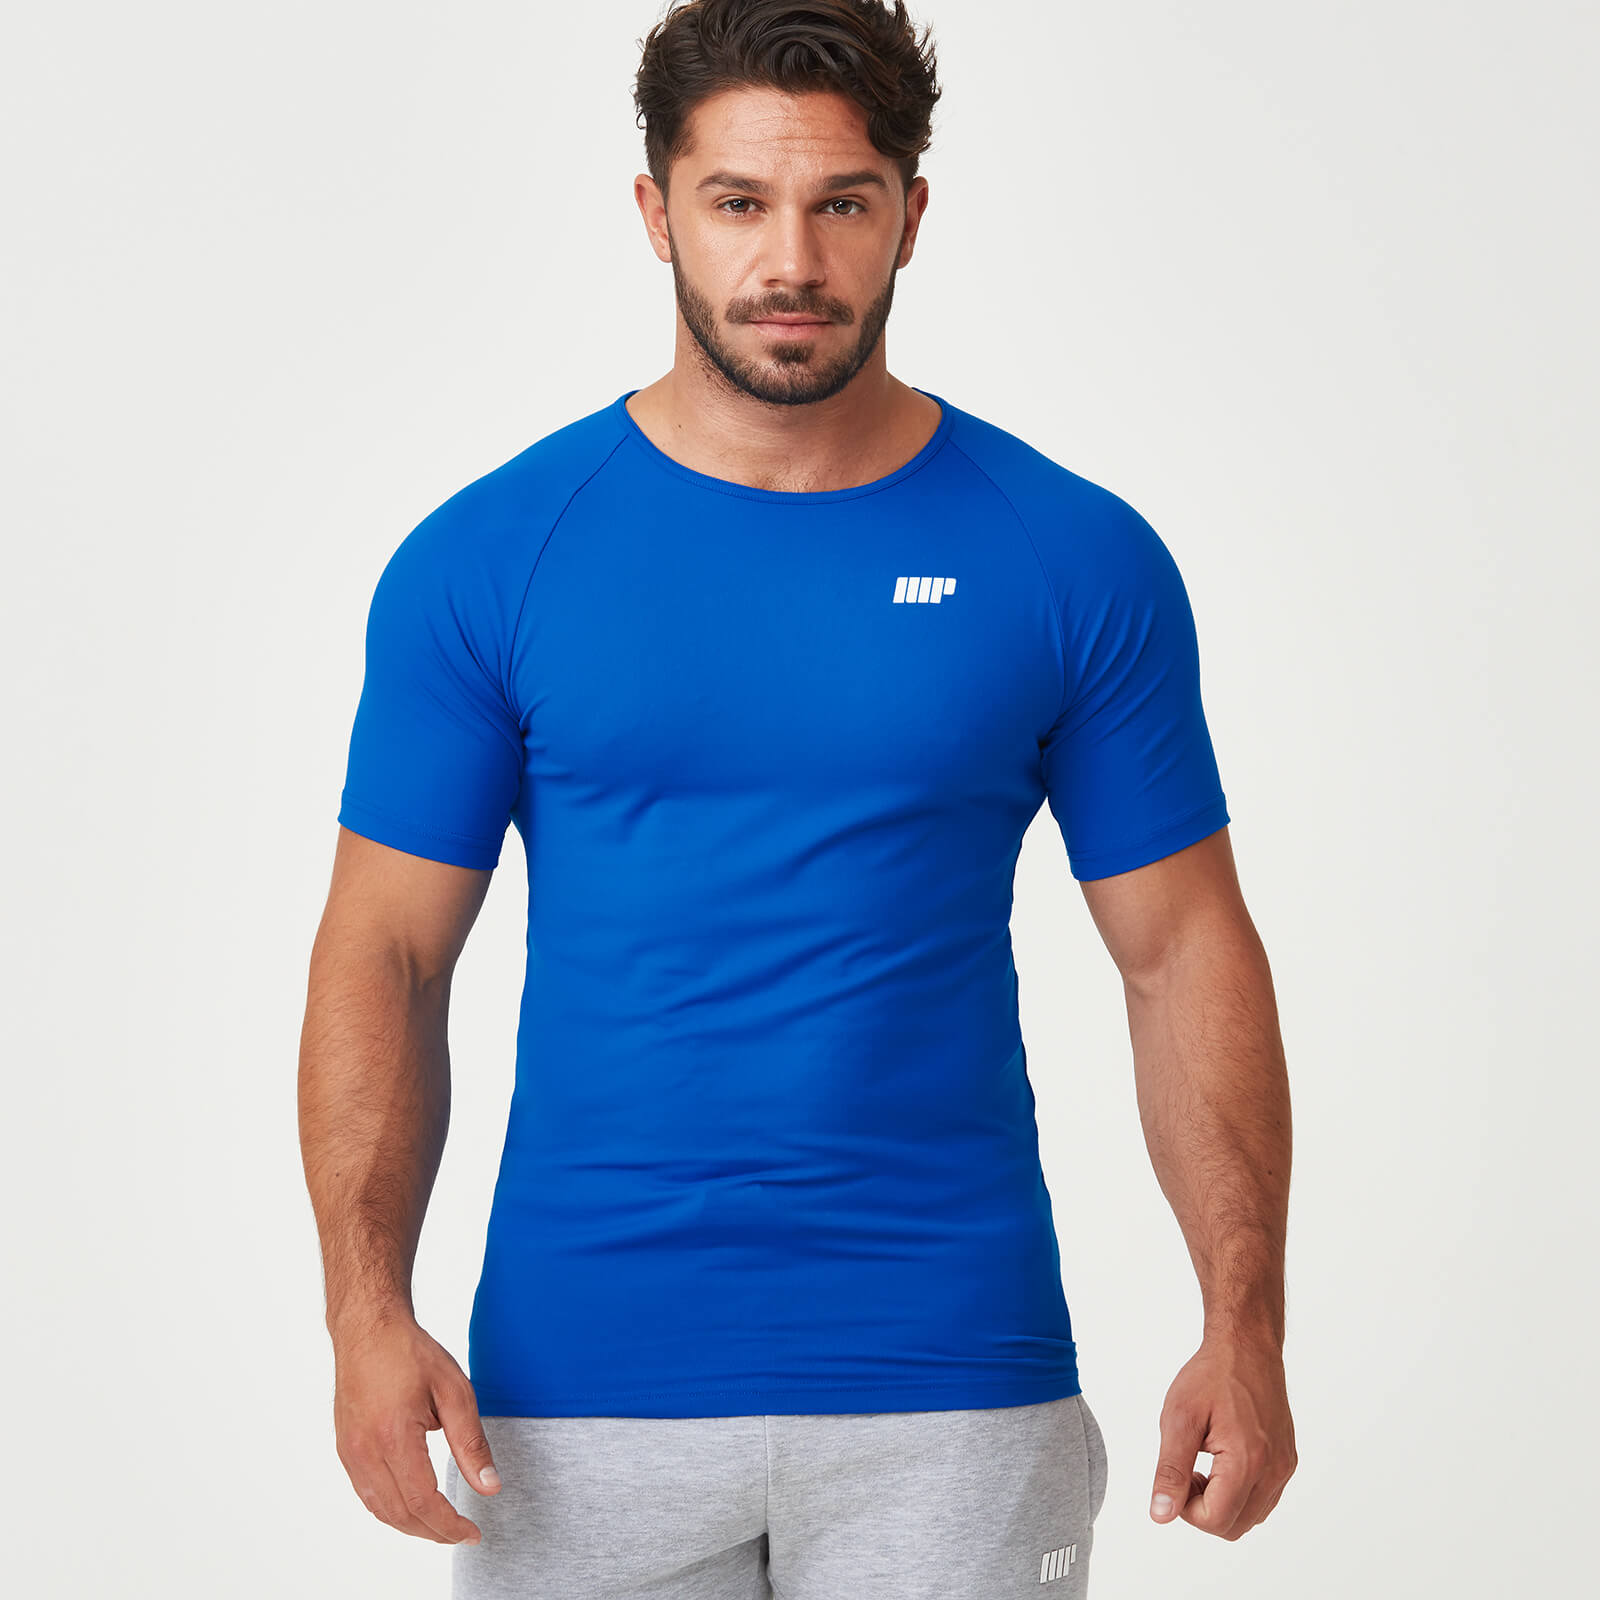 Myprotein Dry Tech T-Shirt - Dark Blue - XS